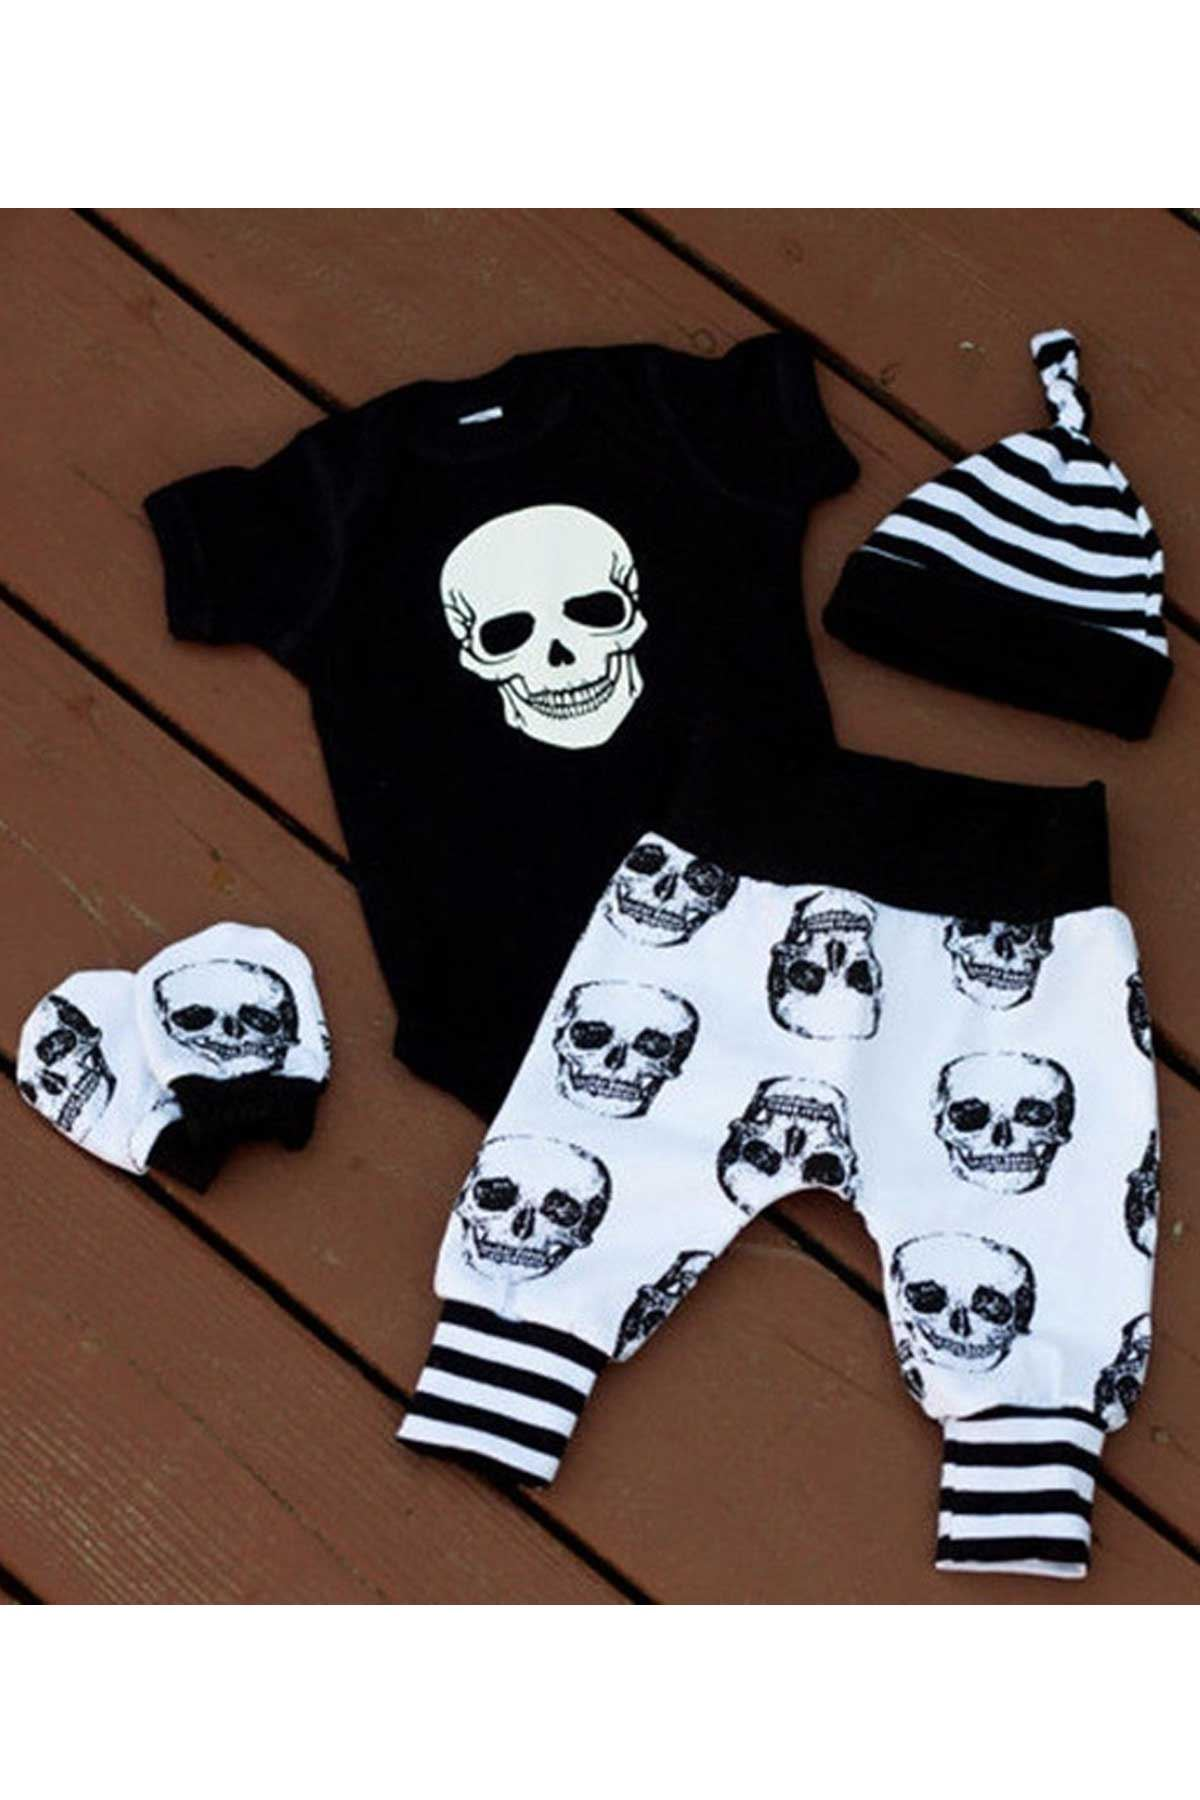 2021 Summer Baby Boy Girl Skull Clothes Romper + Long Pant Hat 4 pcs Outfit Set 0-18M Baby rompers girls boys newborn clothes